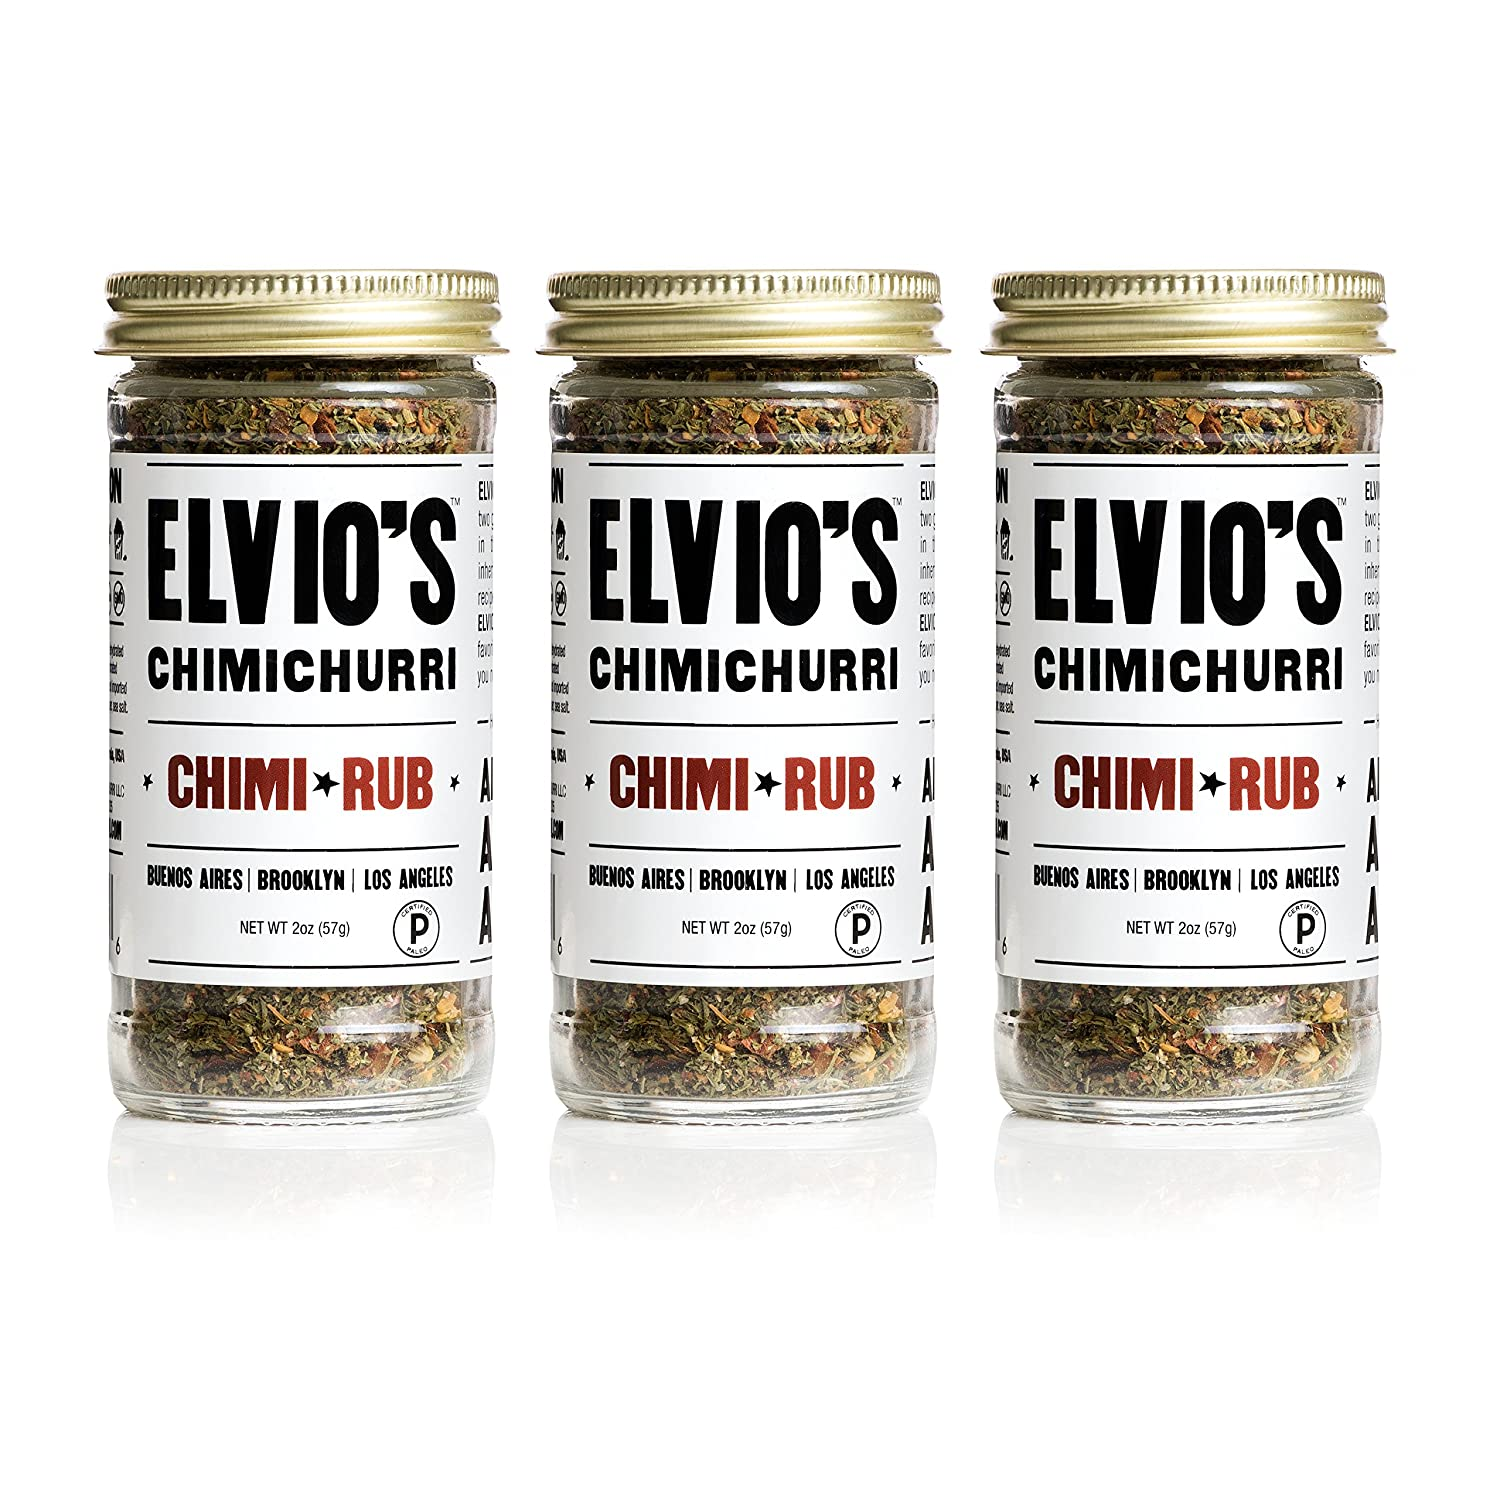 ELVIO'S CHIMICHURRI -CHIMI RUB Spice Mix (2oz), Pack of 3